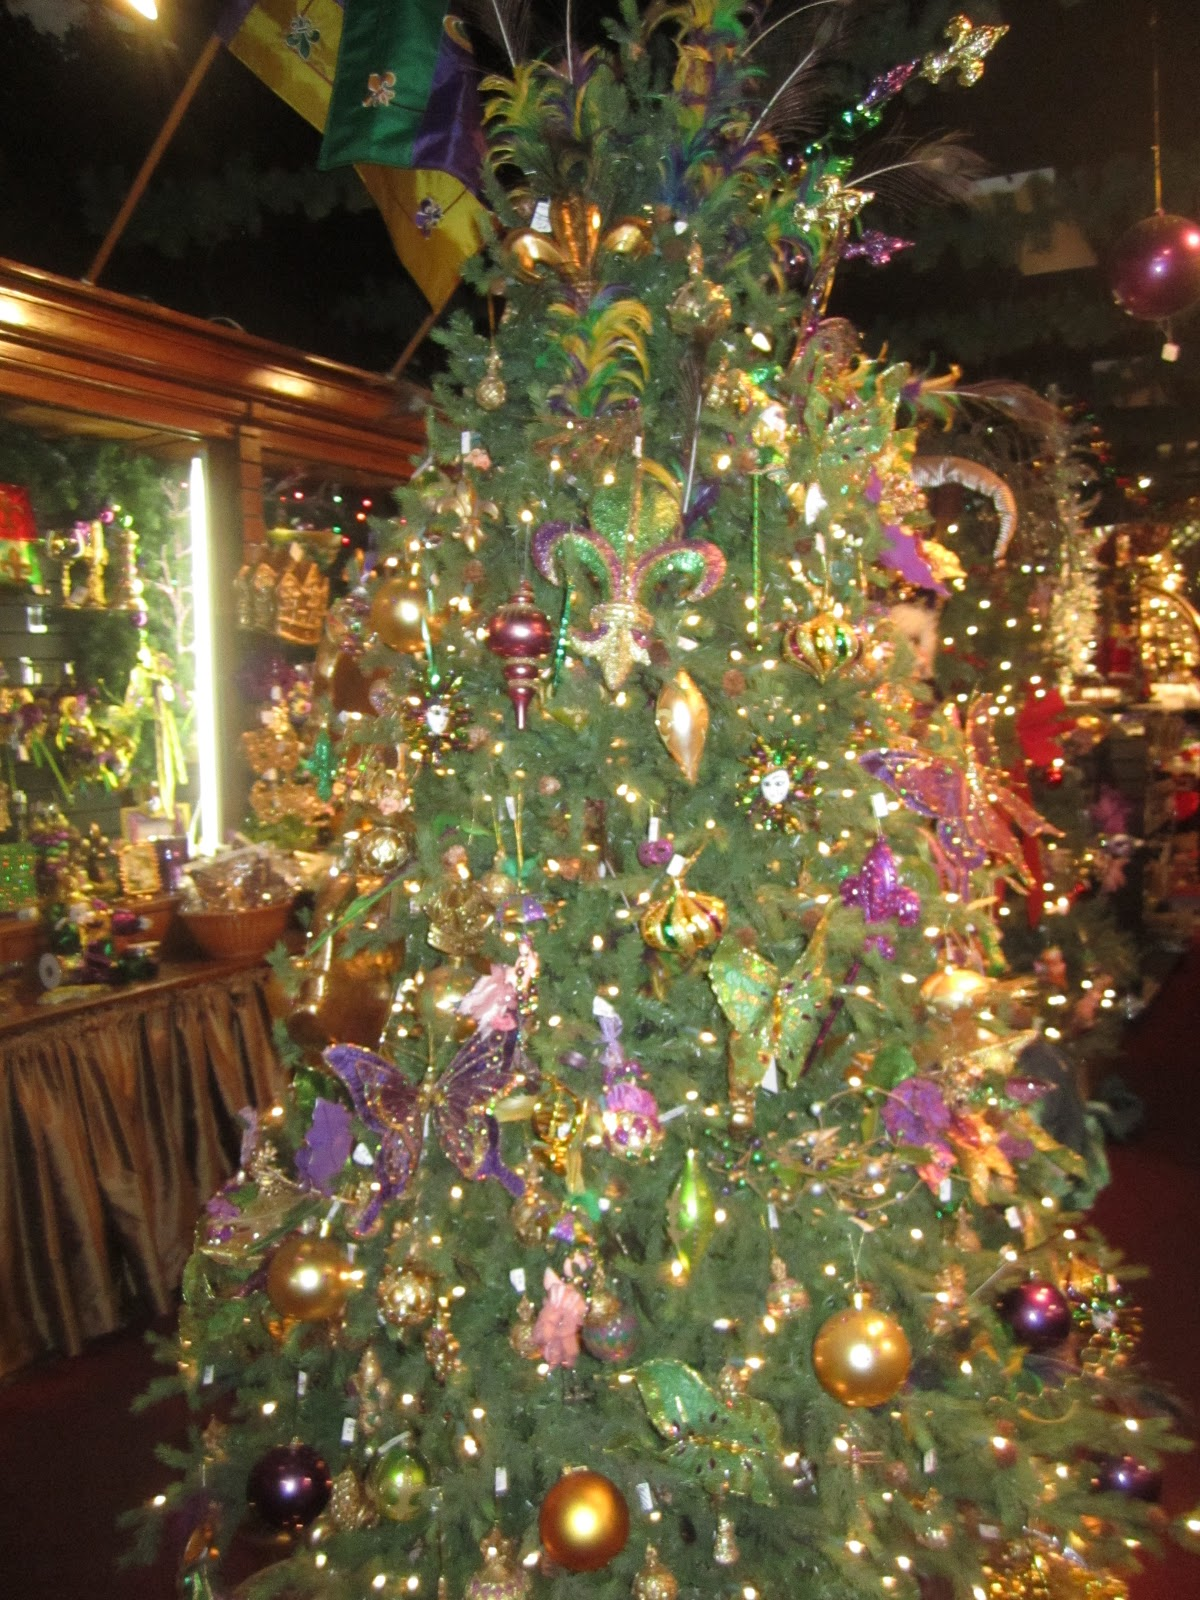 Decorated Christmas Tree Not Taking Water : Bywater boo only in new orleans mardi gras home decor